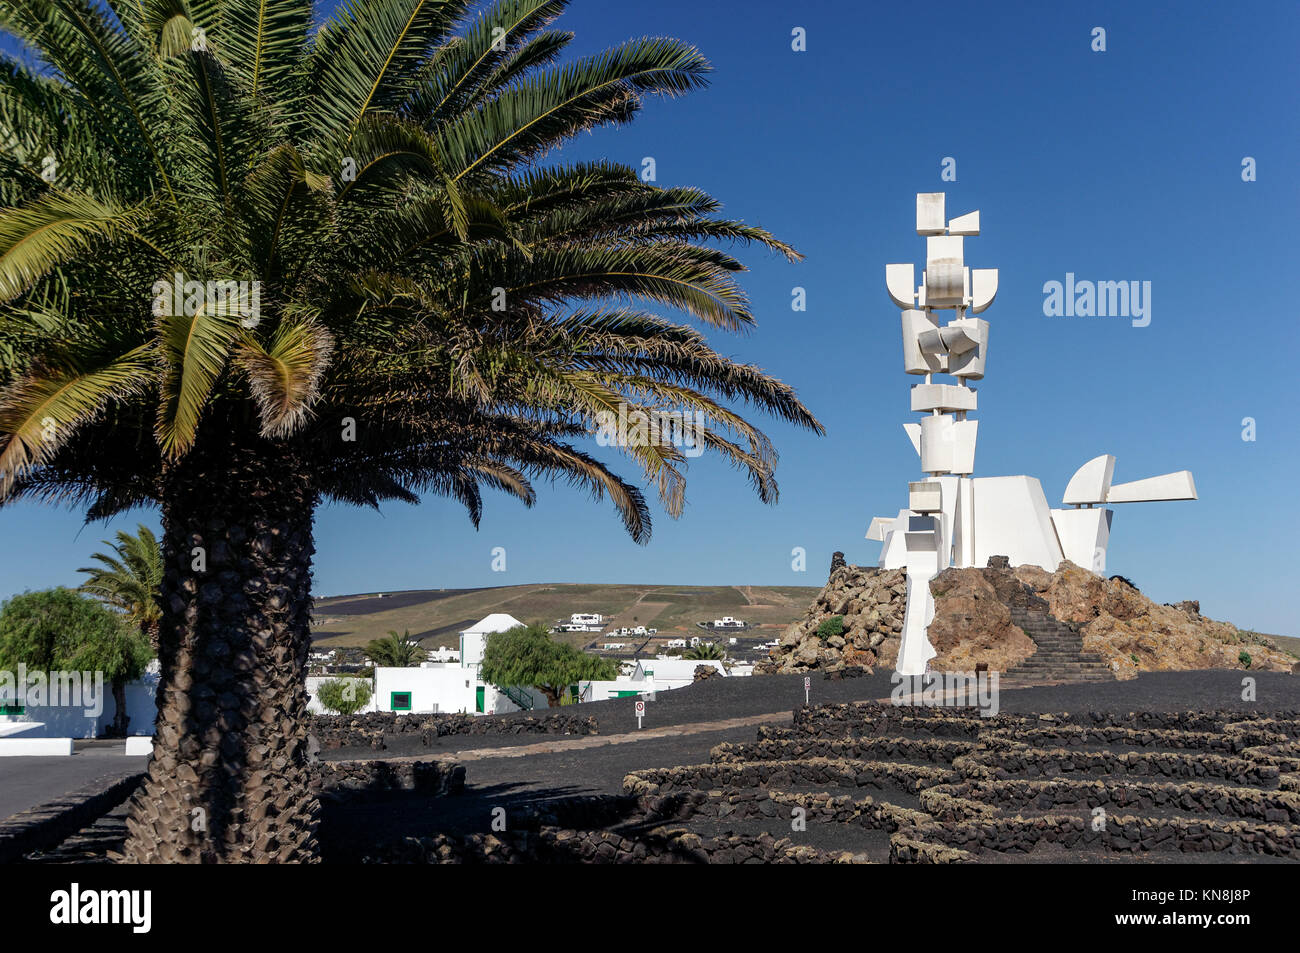 Lanzarote, Canary Islands, Spain - Stock Image